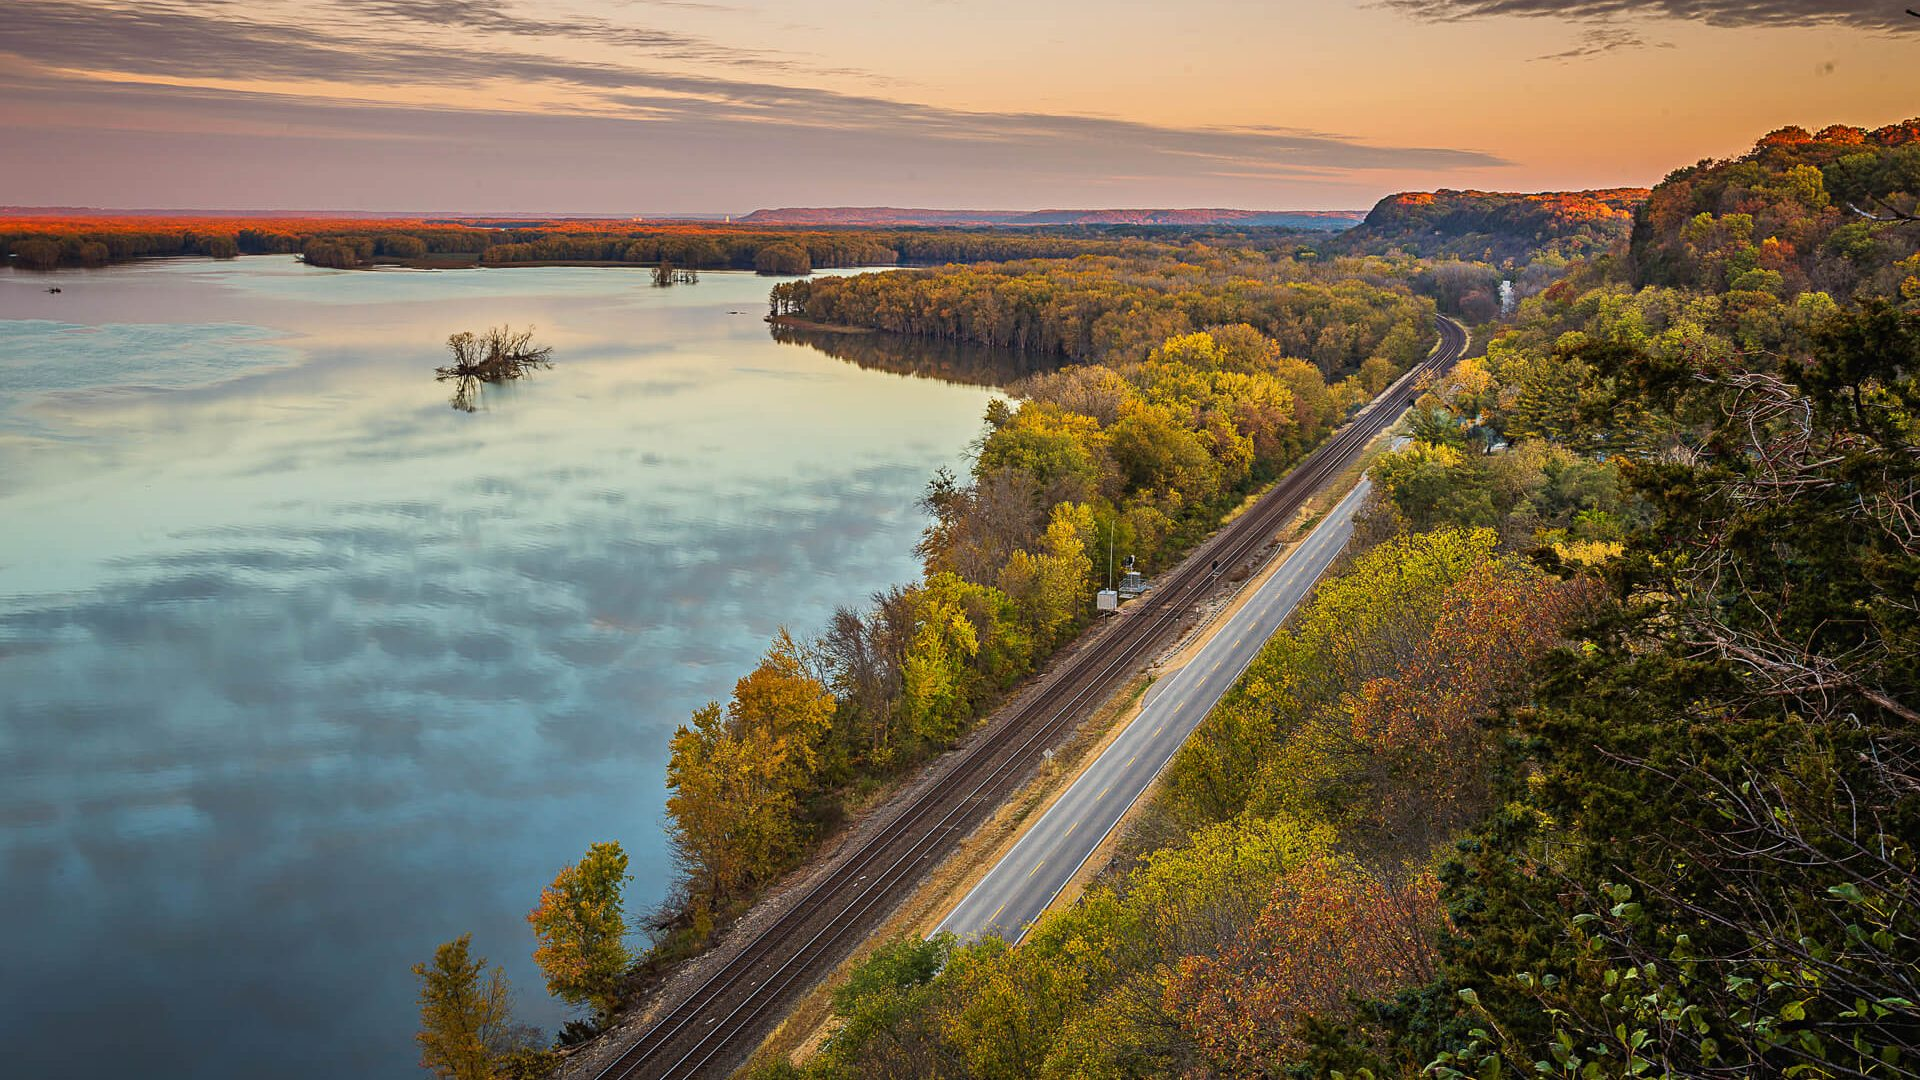 Scenic view on the Great River Road